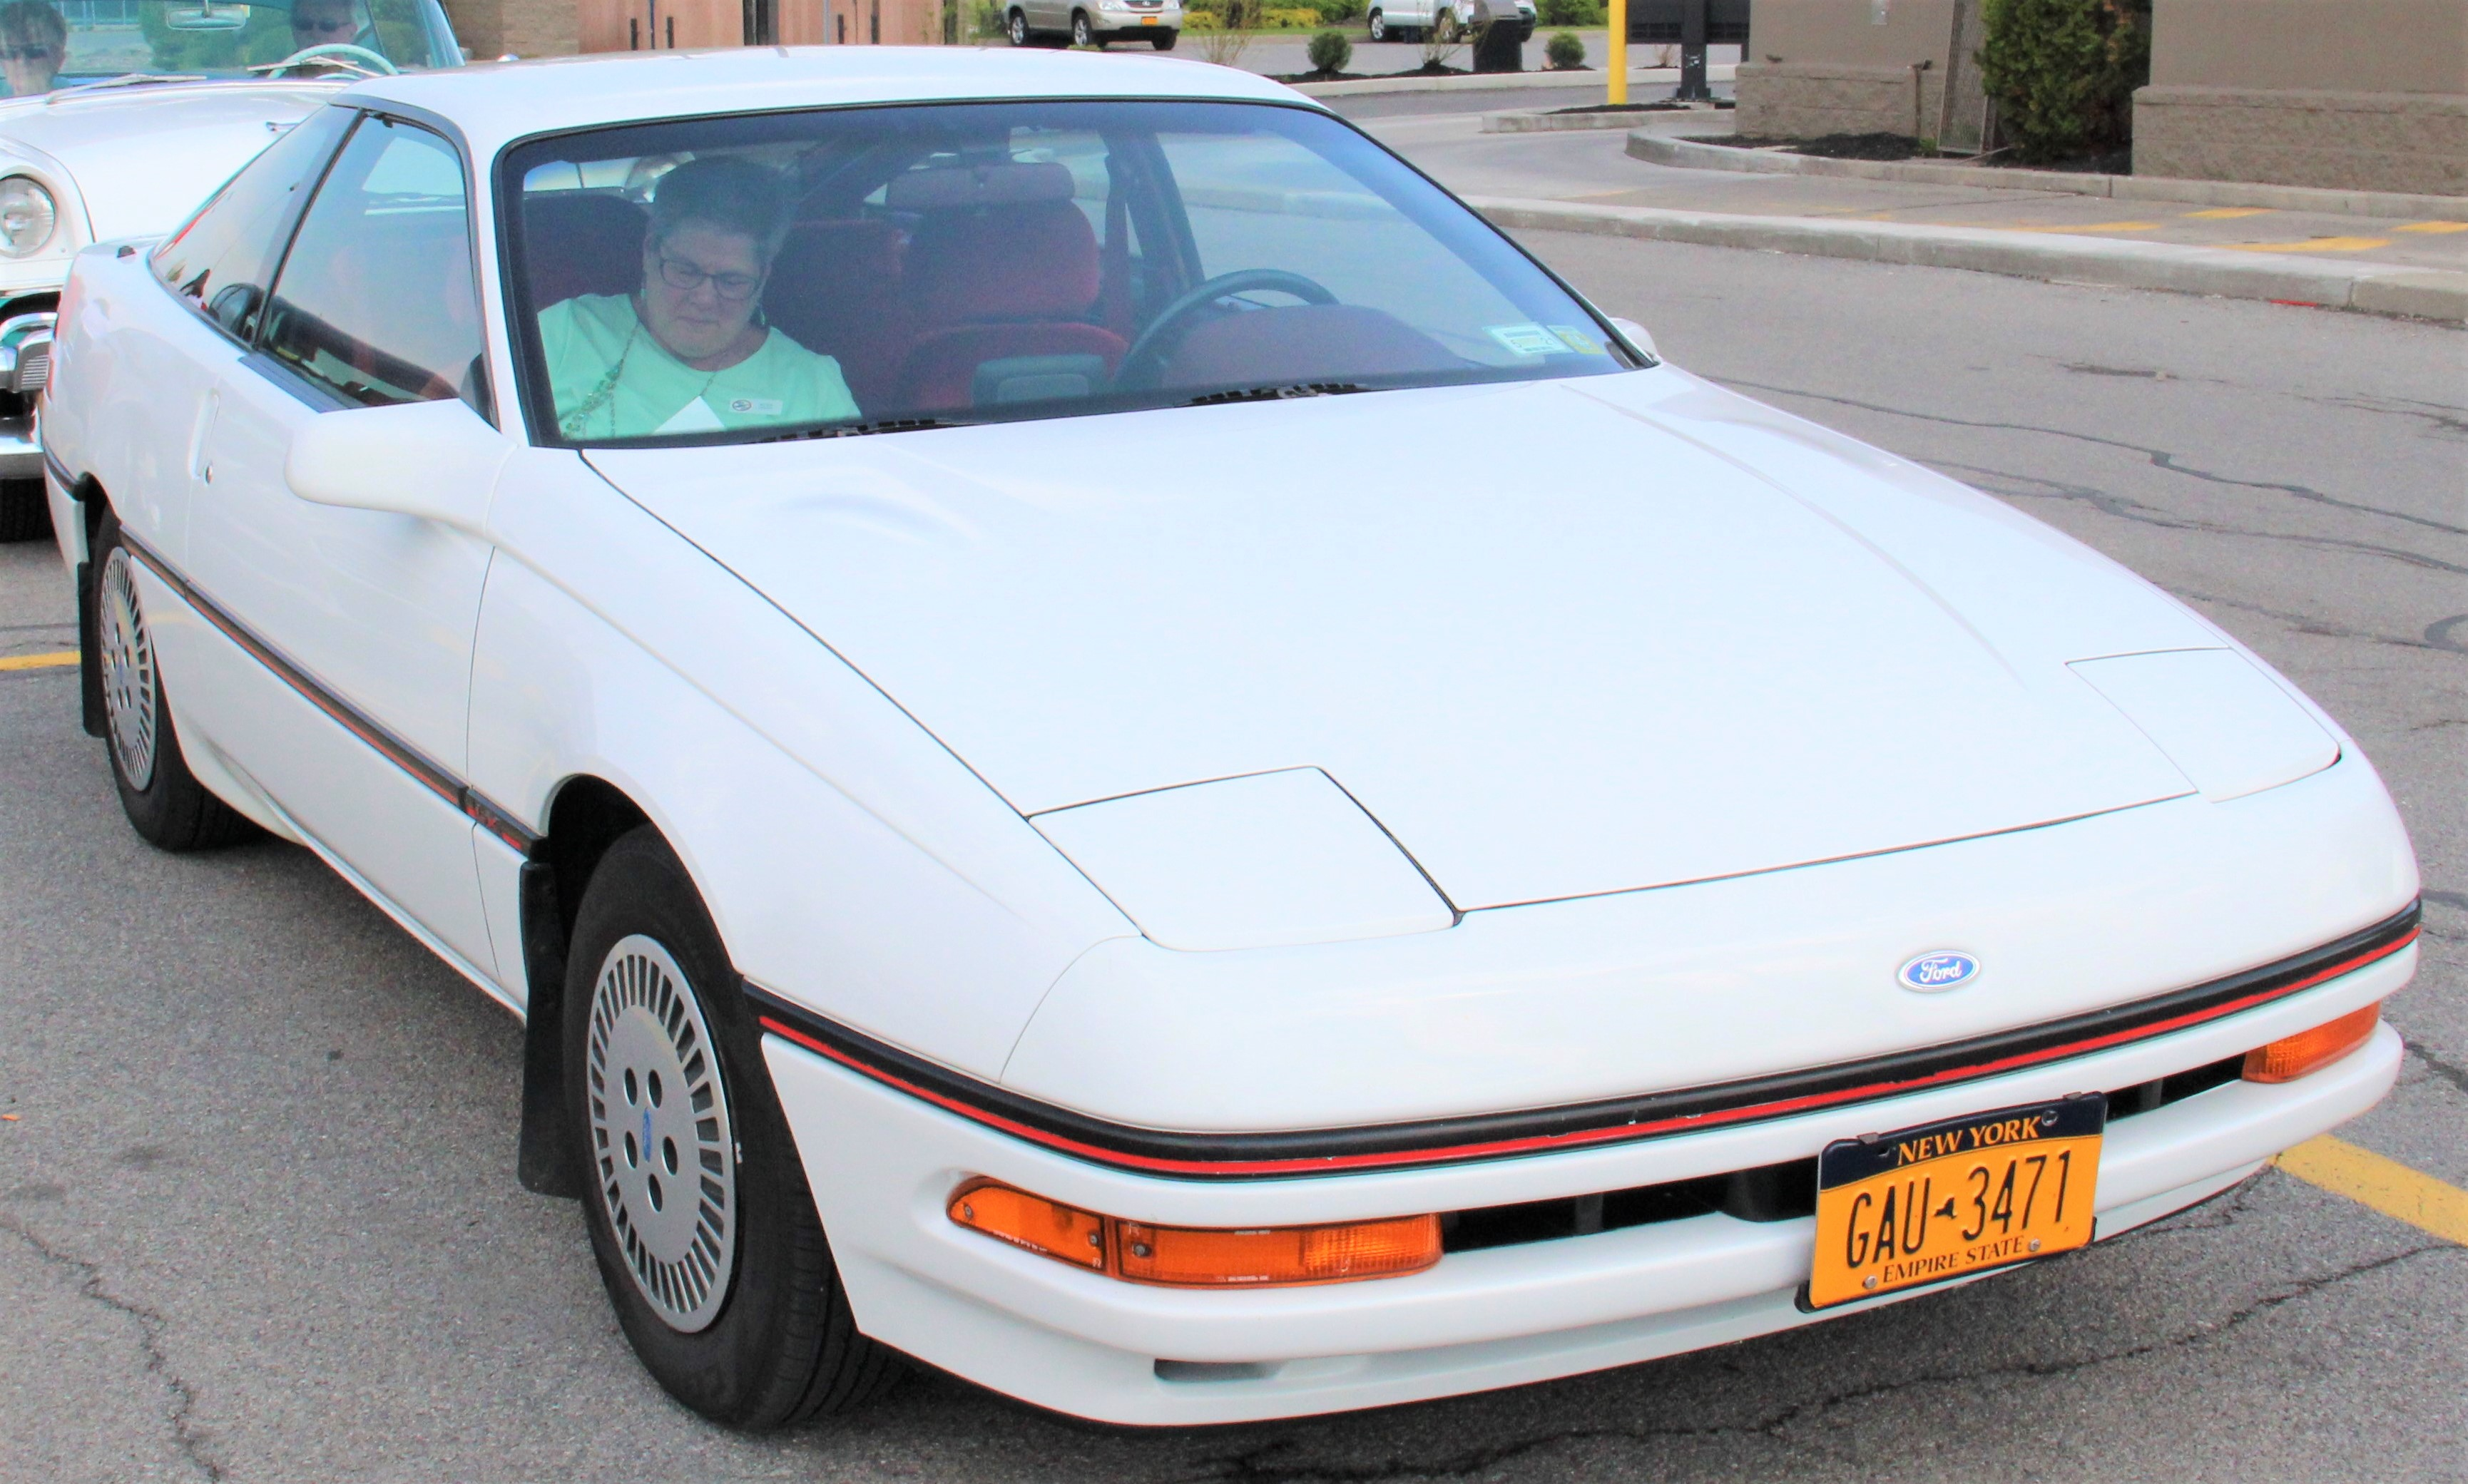 IMG_0270-Camanns-89-Ford-Probe-a